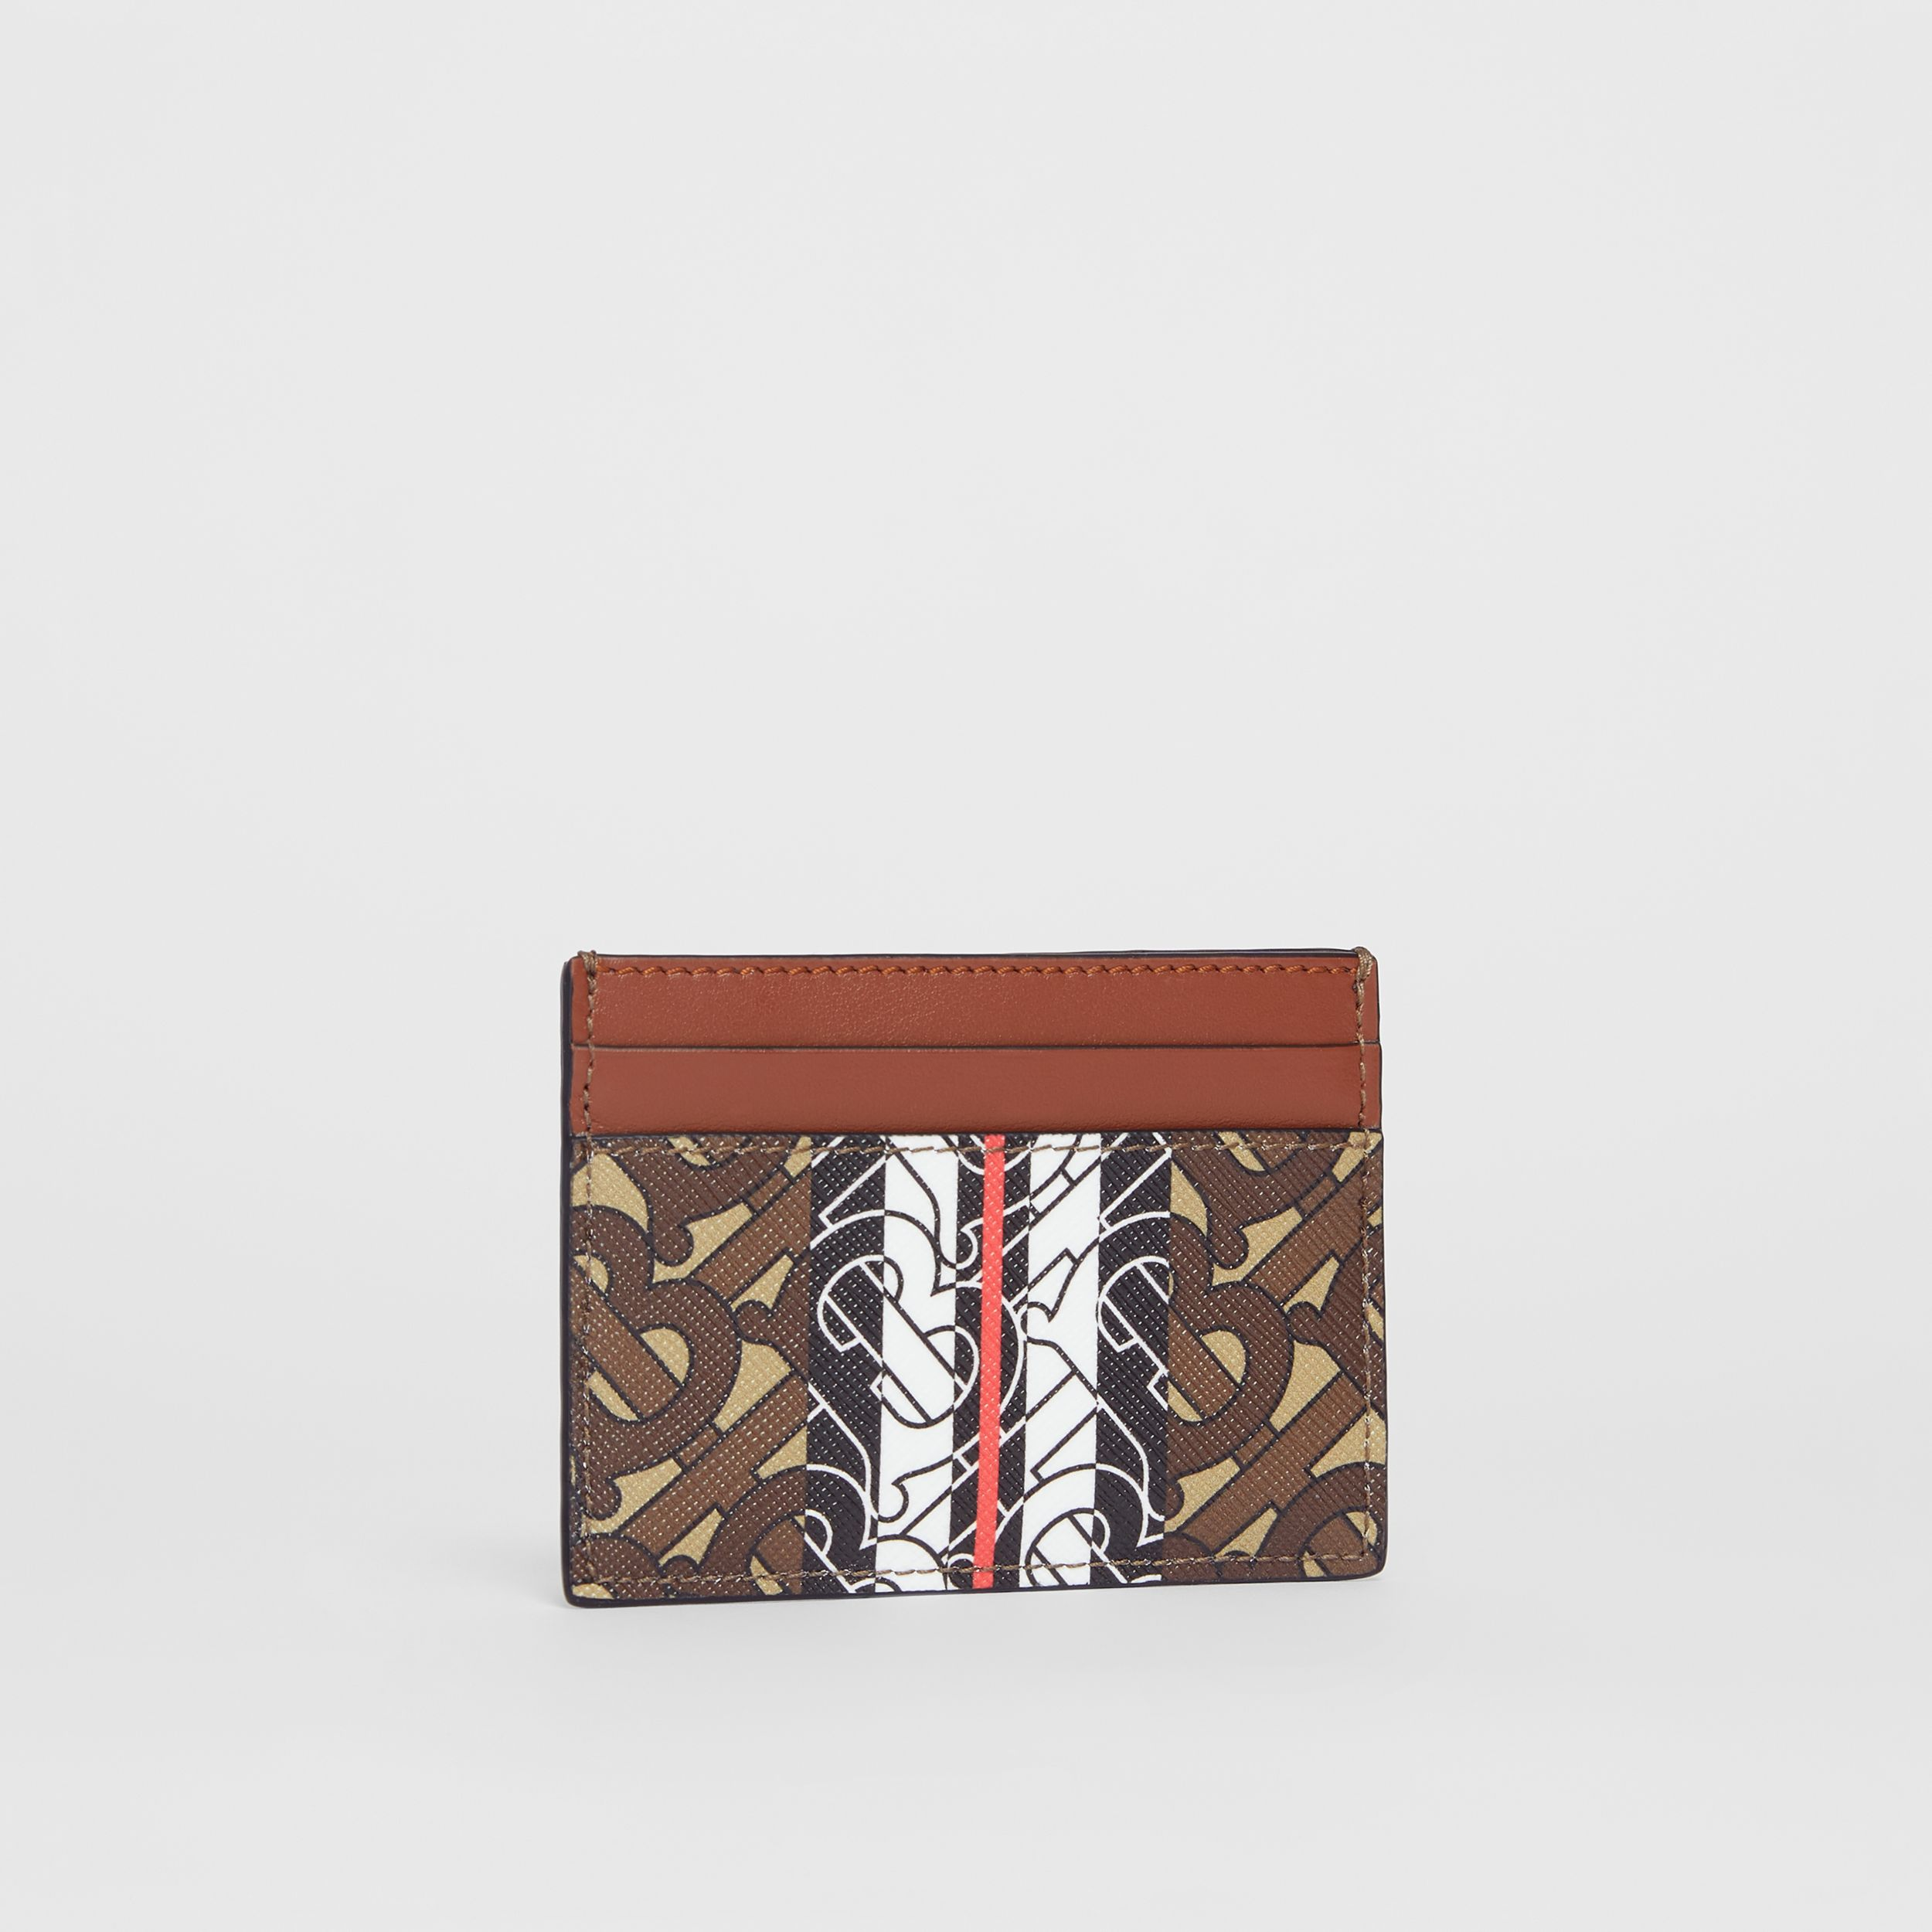 Monogram Stripe E-canvas Card Case in Bridle Brown | Burberry Singapore - 4